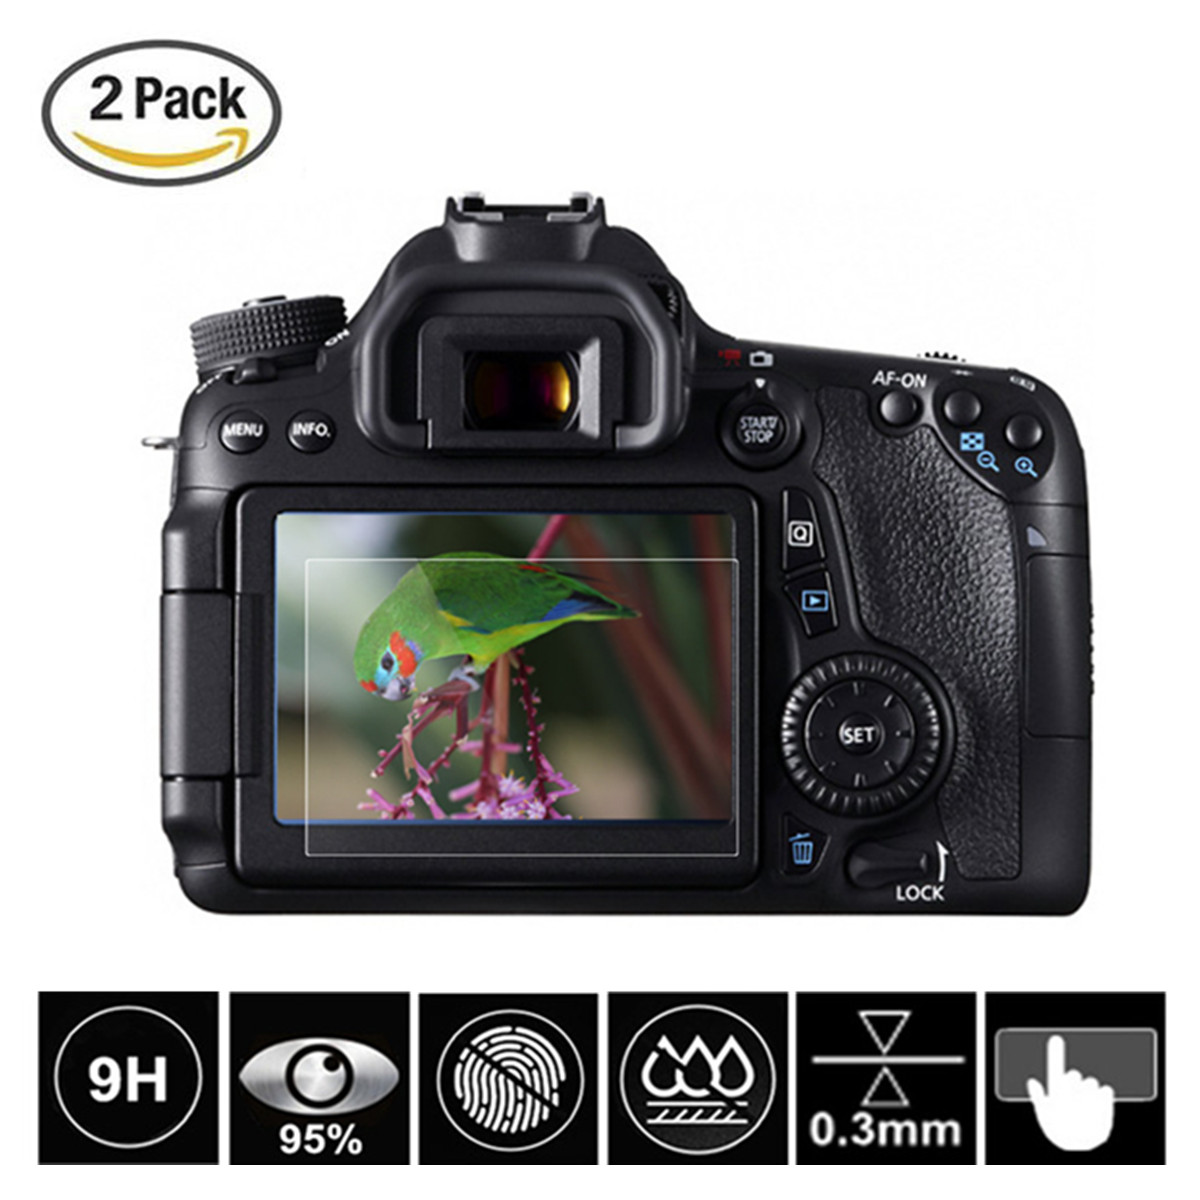 Camera & Photo Accessories Friendly 2 Pcs Tempered Glass Screen Protector For Canon Eos 5d Mark Iv Iii 5ds 5dsr 6d 7d Ii 77d 70d 80d 750d 760d 800d 1200d 1300d 1500 Goods Of Every Description Are Available